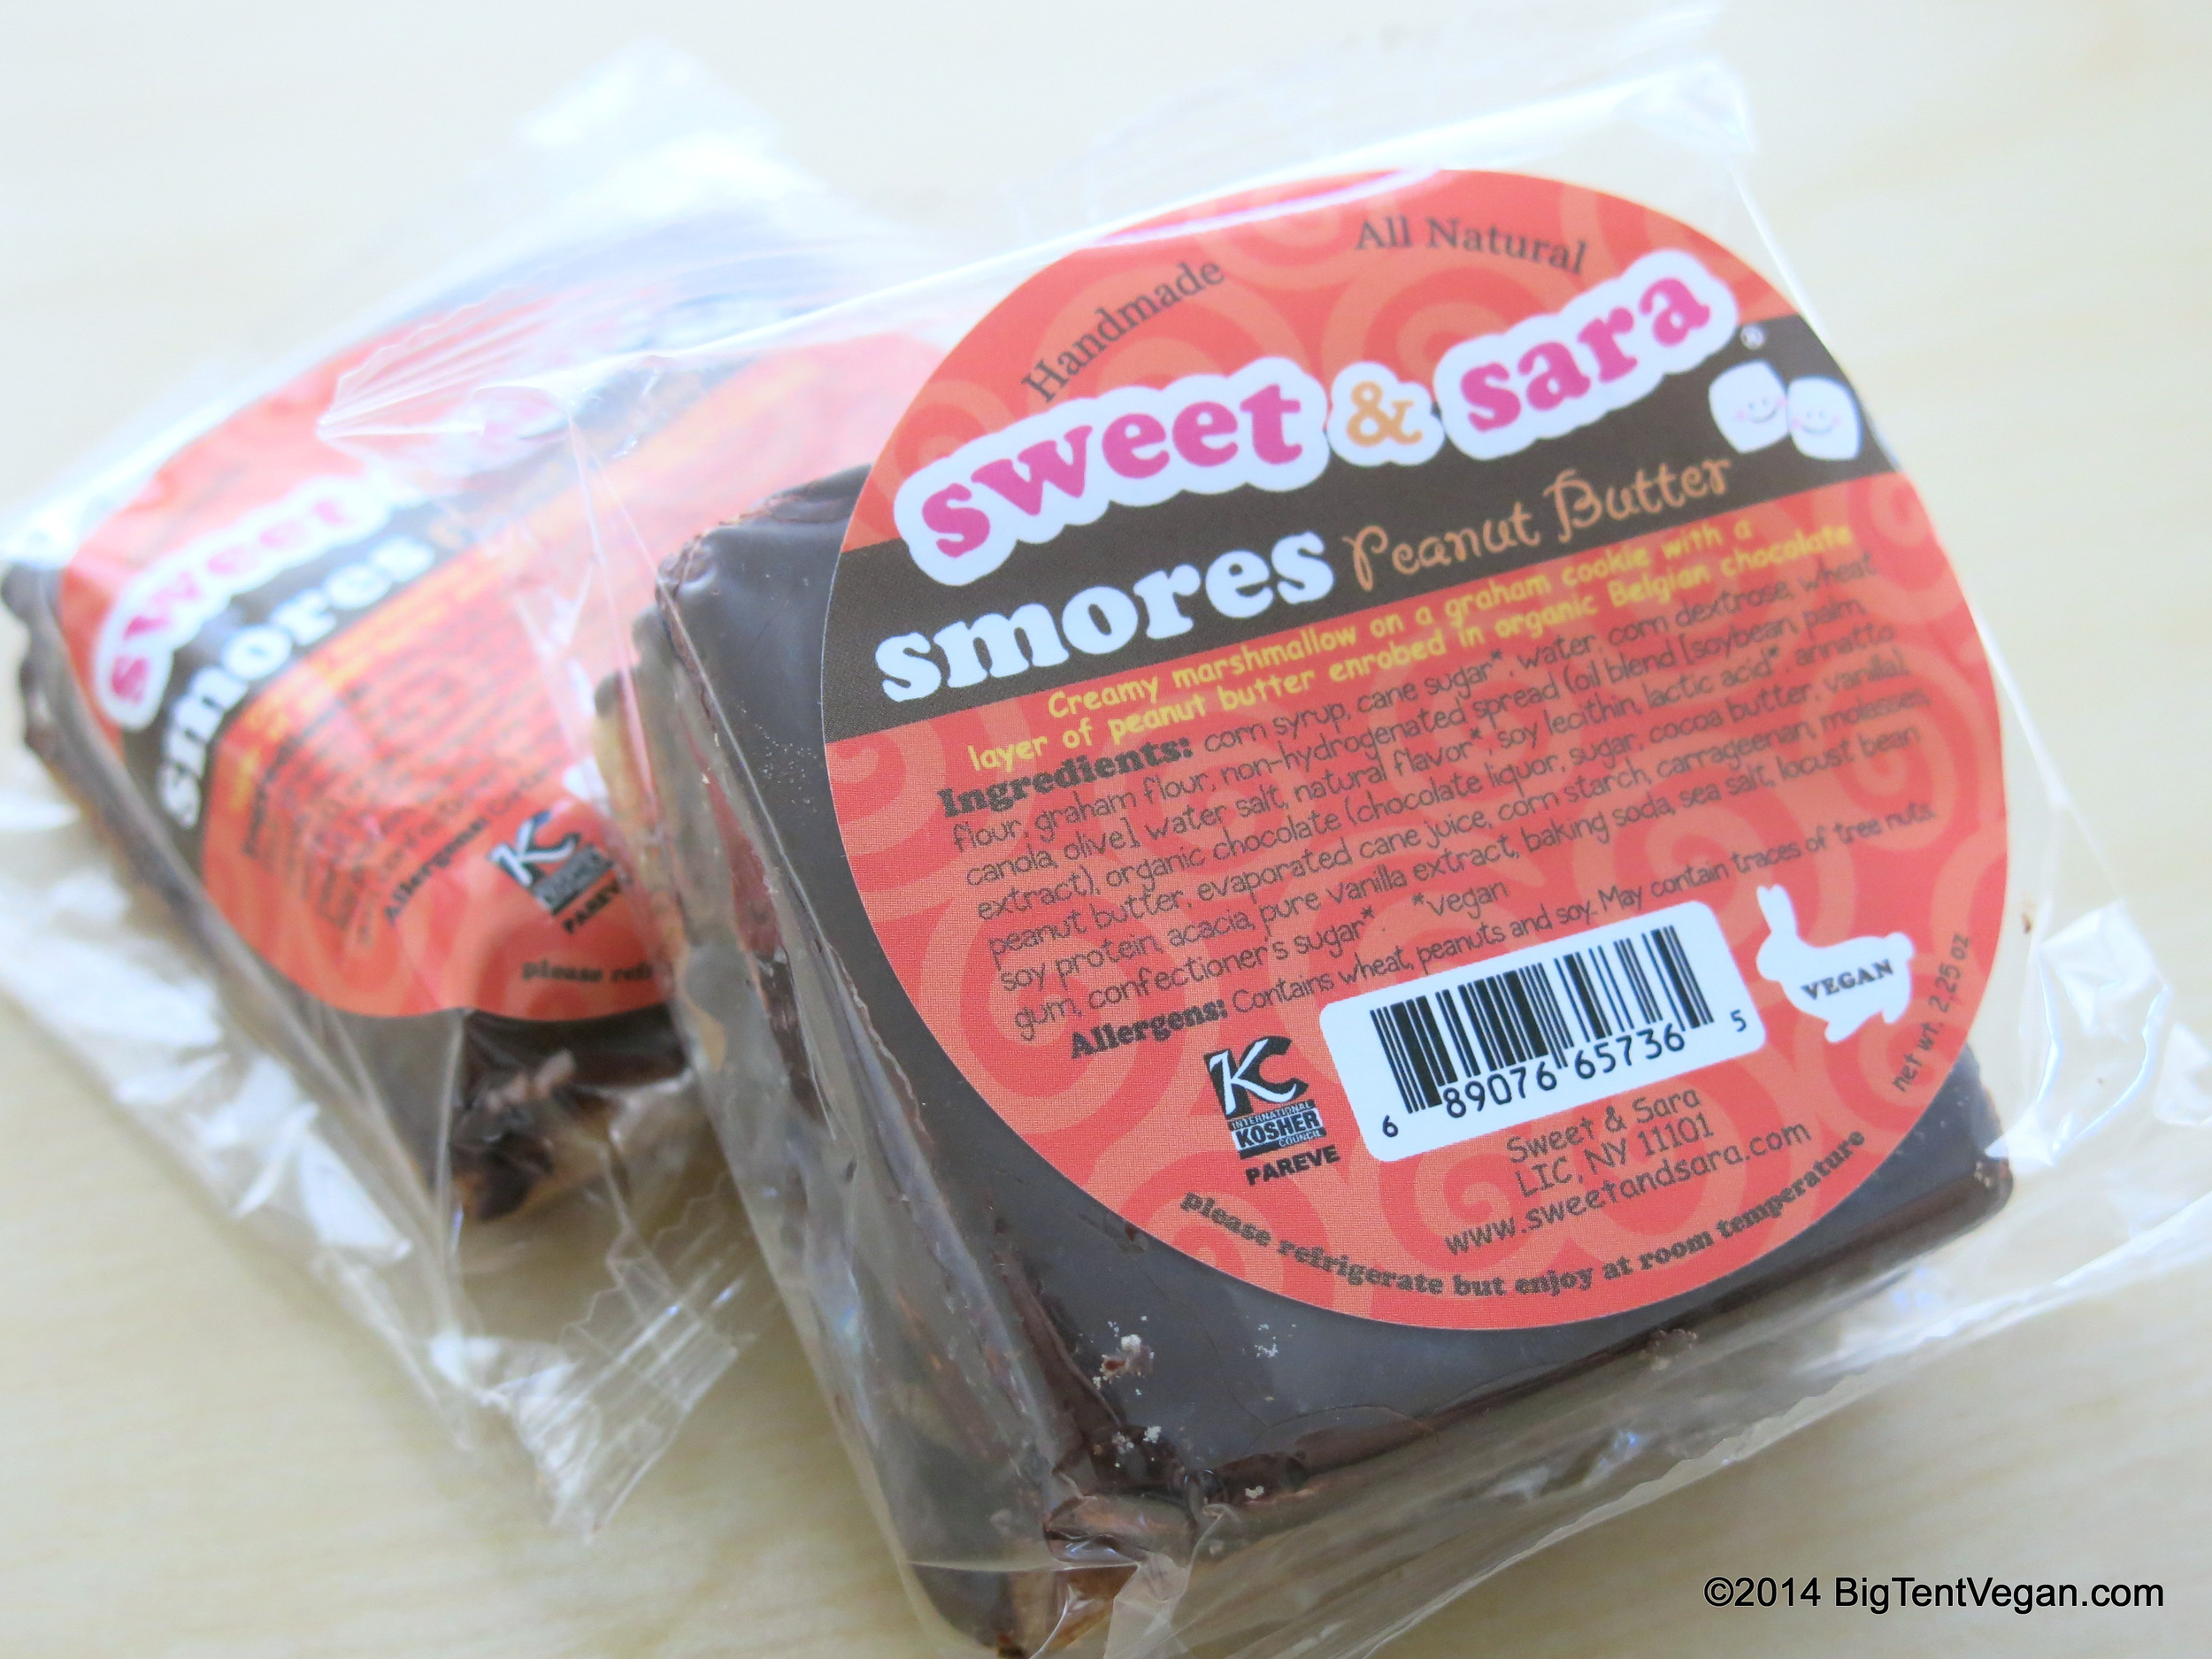 Vegan Peanut Butter S'mores by Sweet and Sara (100% vegan company)